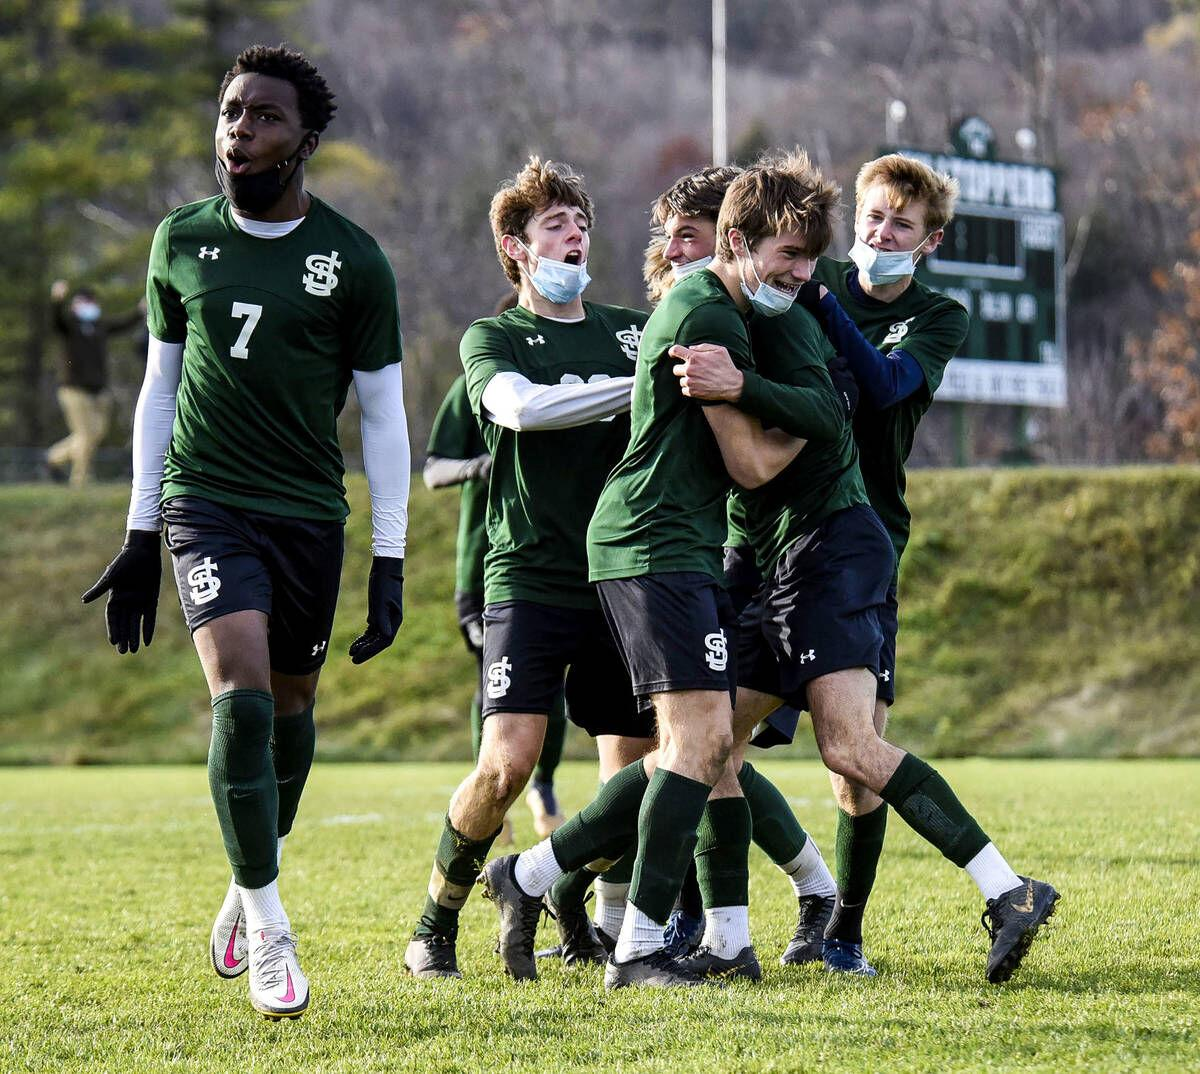 H.S. Soccer: Slew Of Semifinal Clashes On Tap